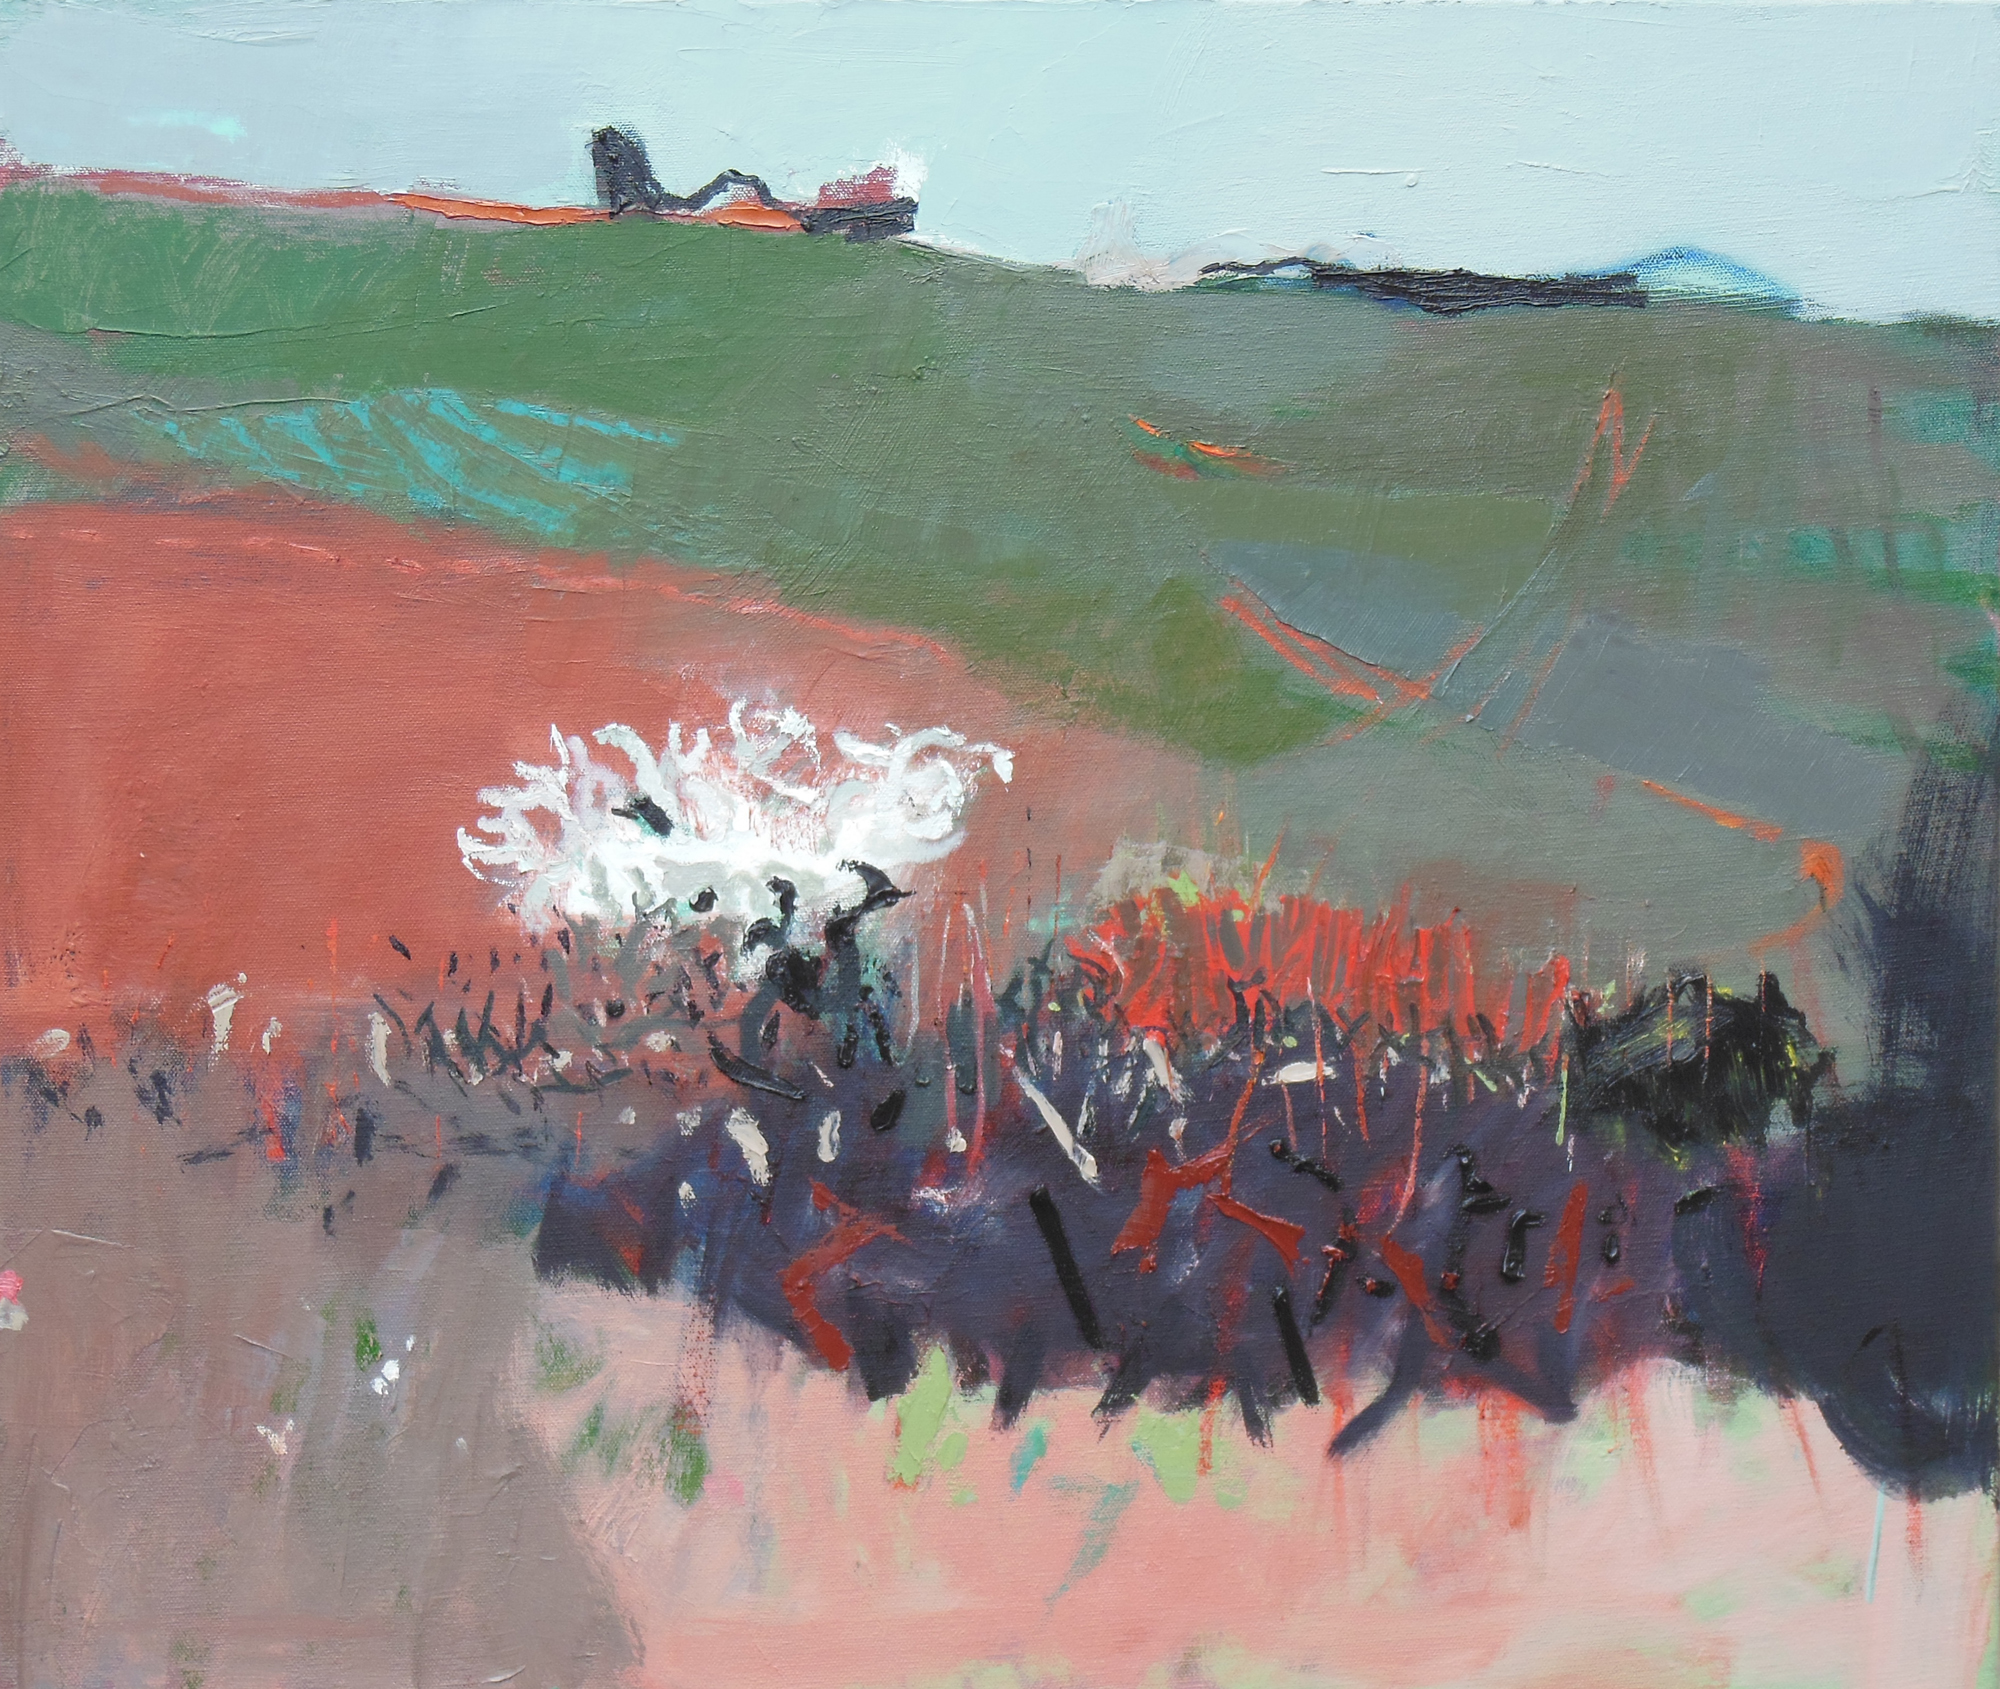 Early Spring North Oxfordshire 11am, oil on canvas, 600mm x 700mm web.jpg